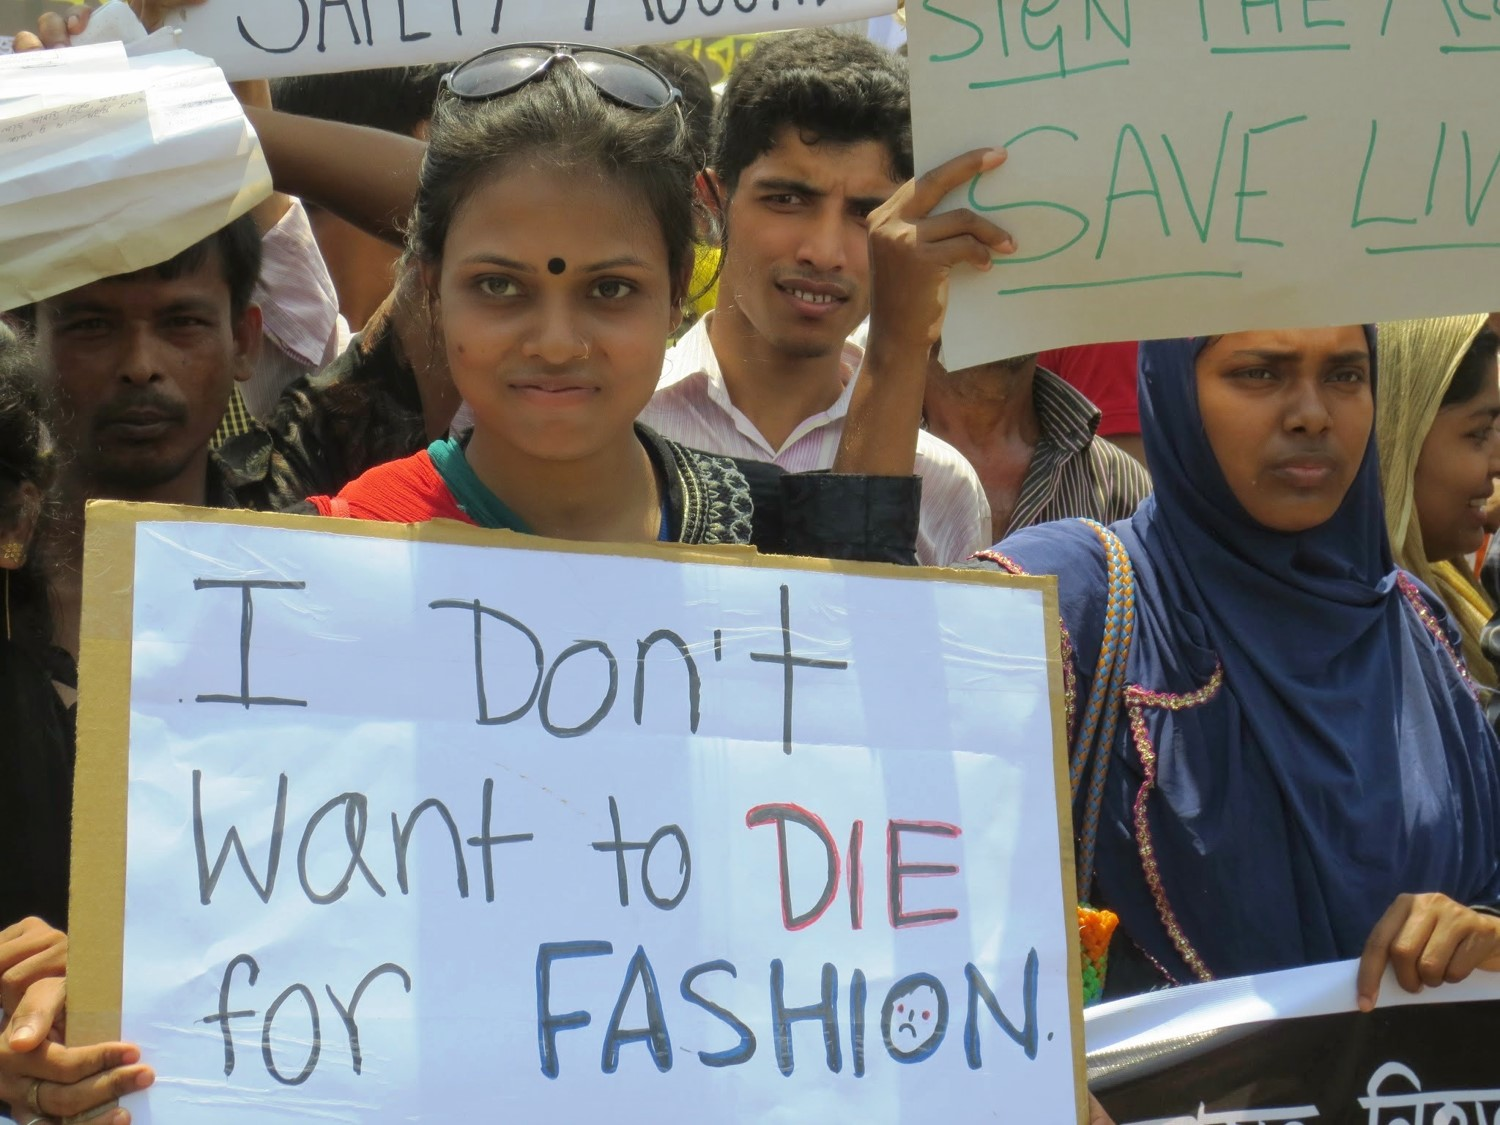 Thousands of garment workers and their unions rally on the one-year anniversary of the Rana Plaza collapse that killed more than 1,100 garment workers   by  Solidarity Center   is   licensed under   CC BY 2.0.